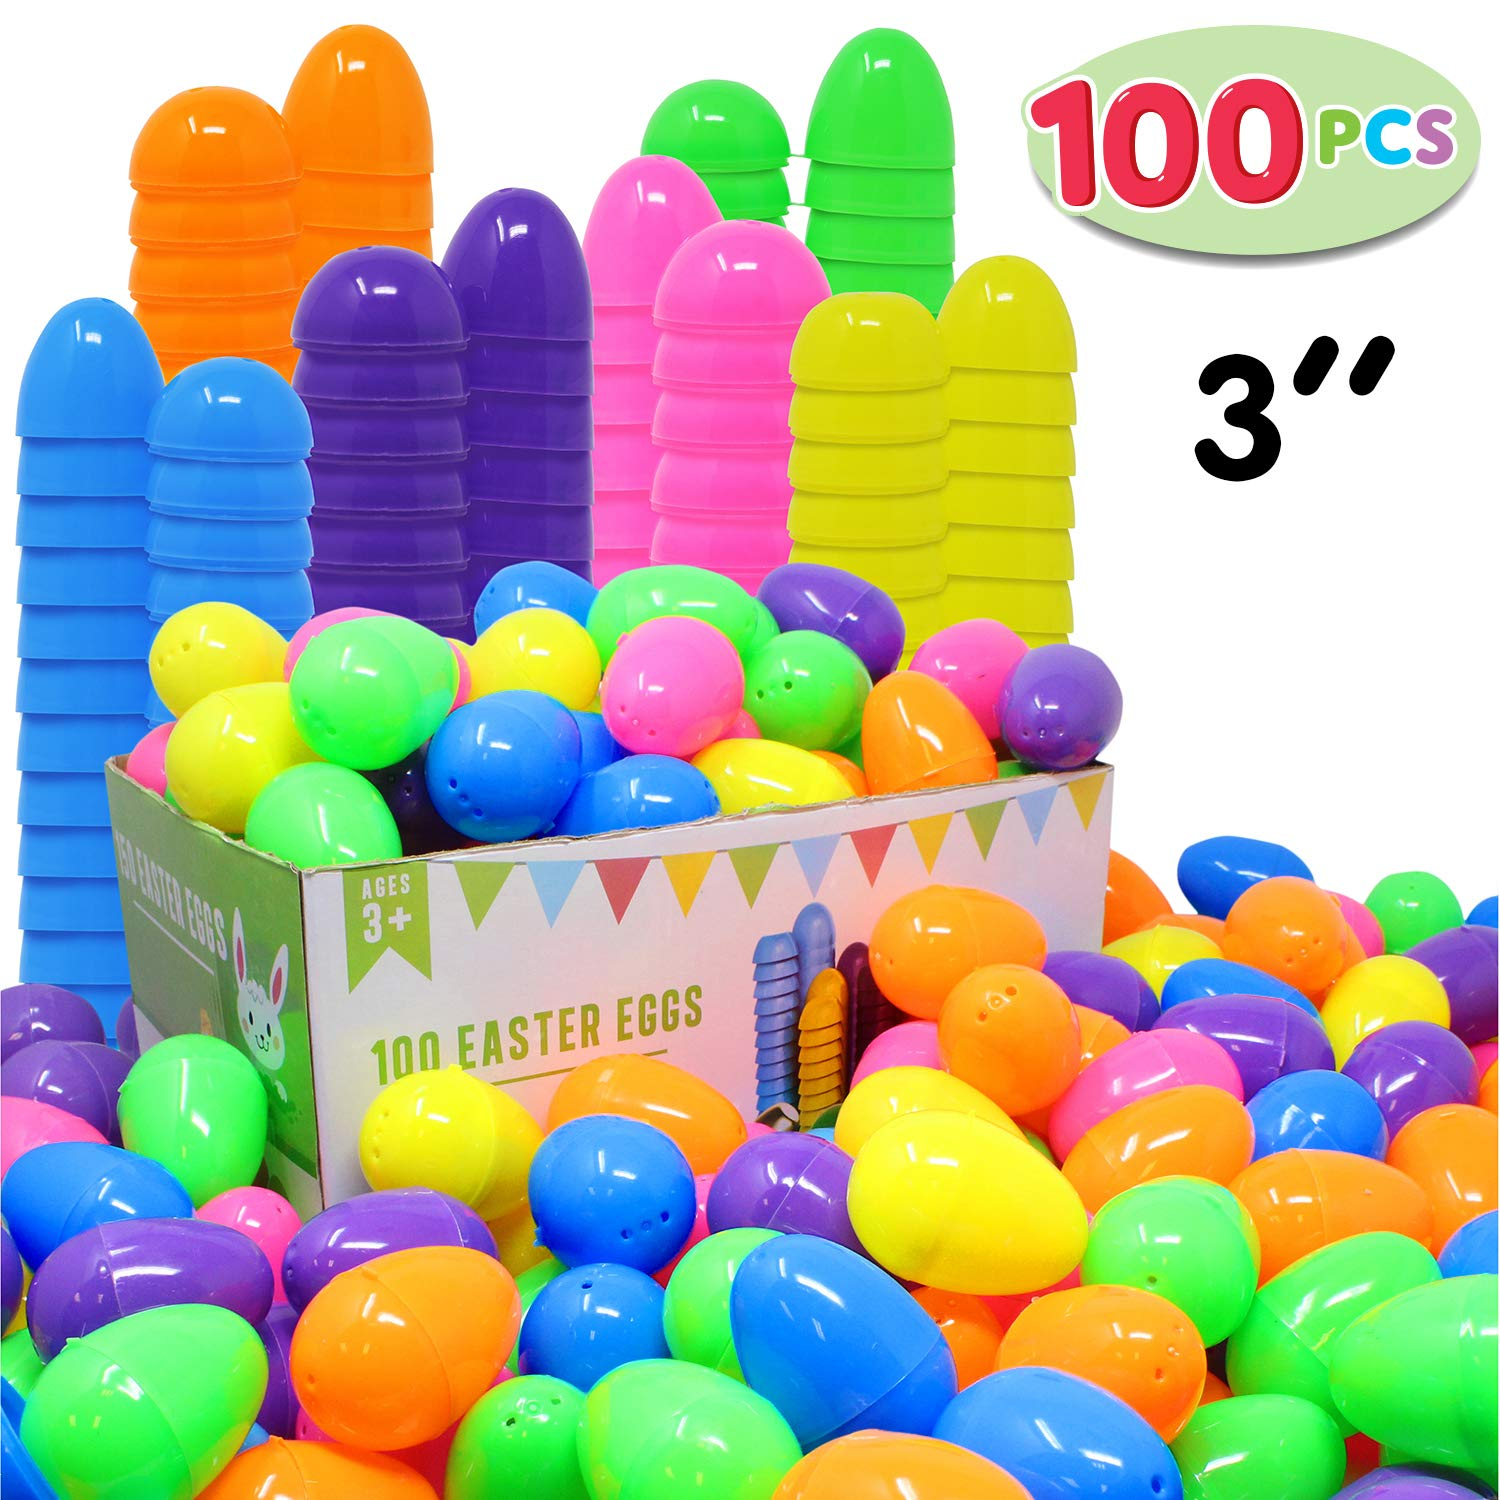 100 Pcs Colorful Easter eggs